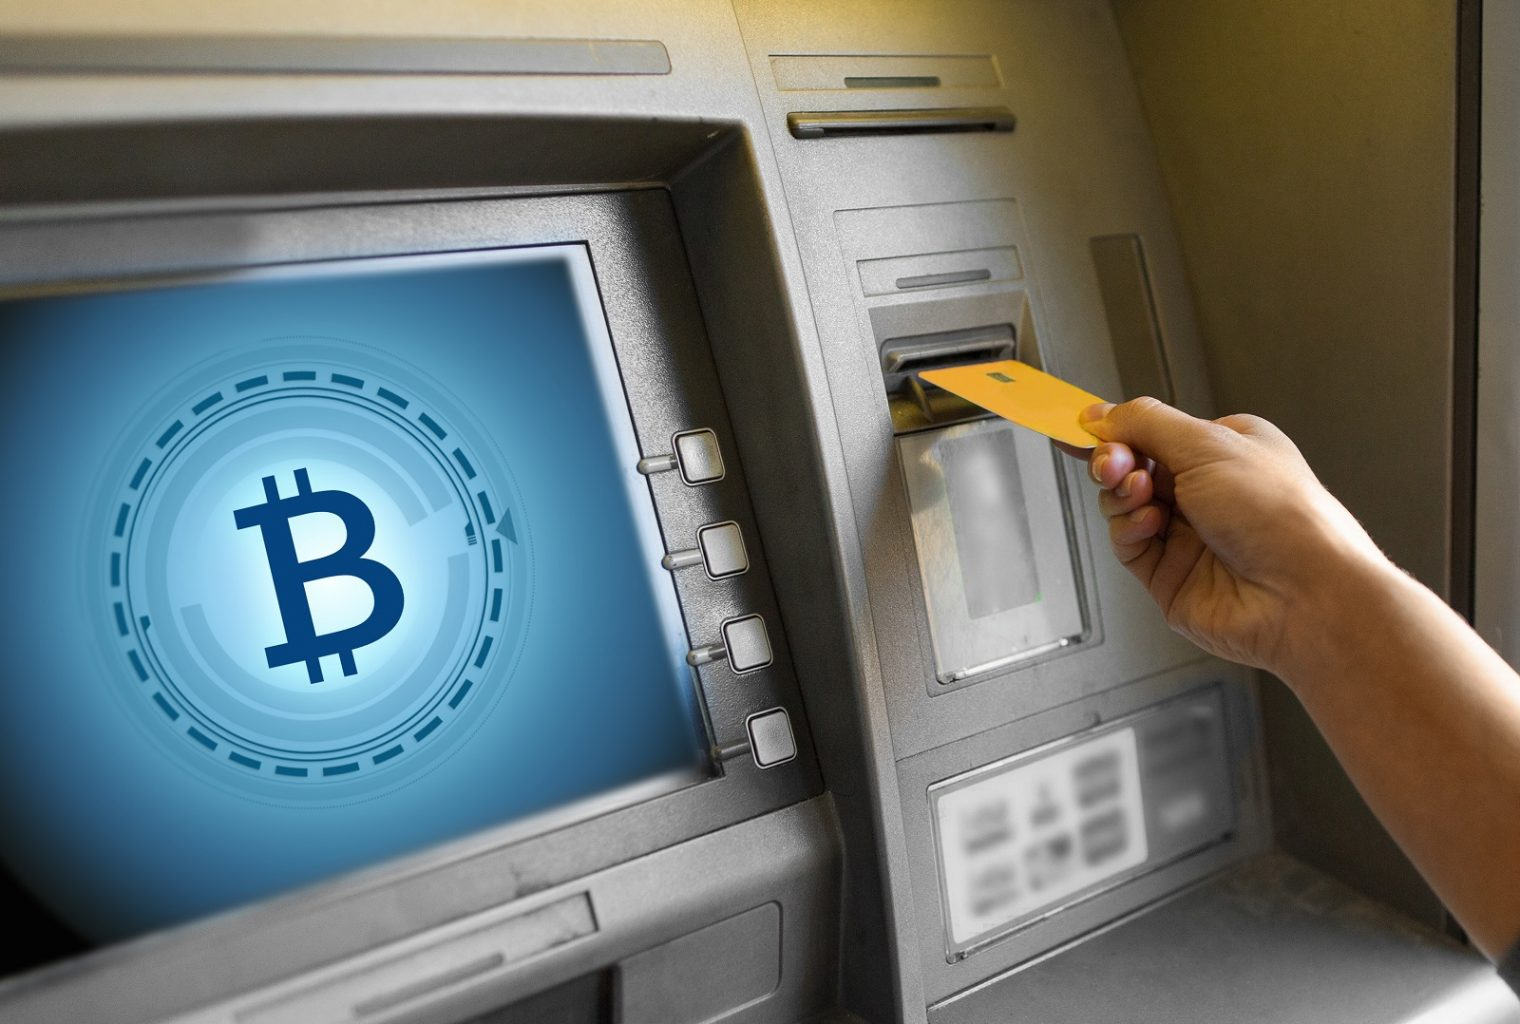 Bitcoin ATMs: An Overview